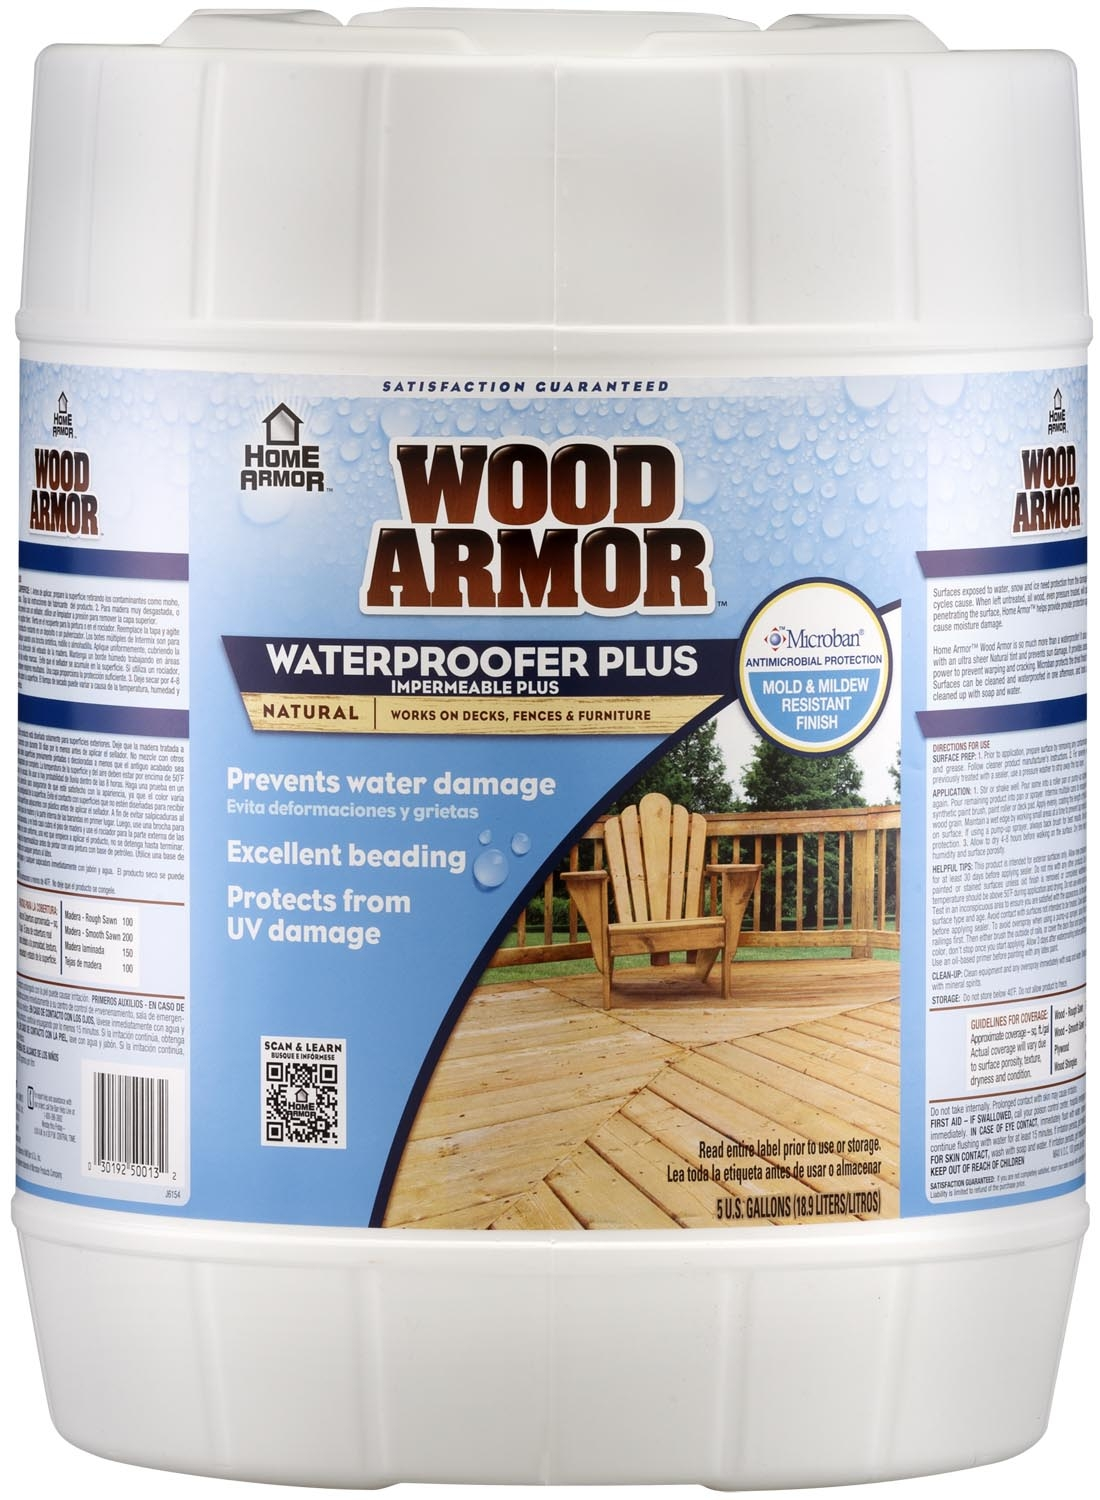 Home Armor Wood Armor Waterproofer Plus Discontinued